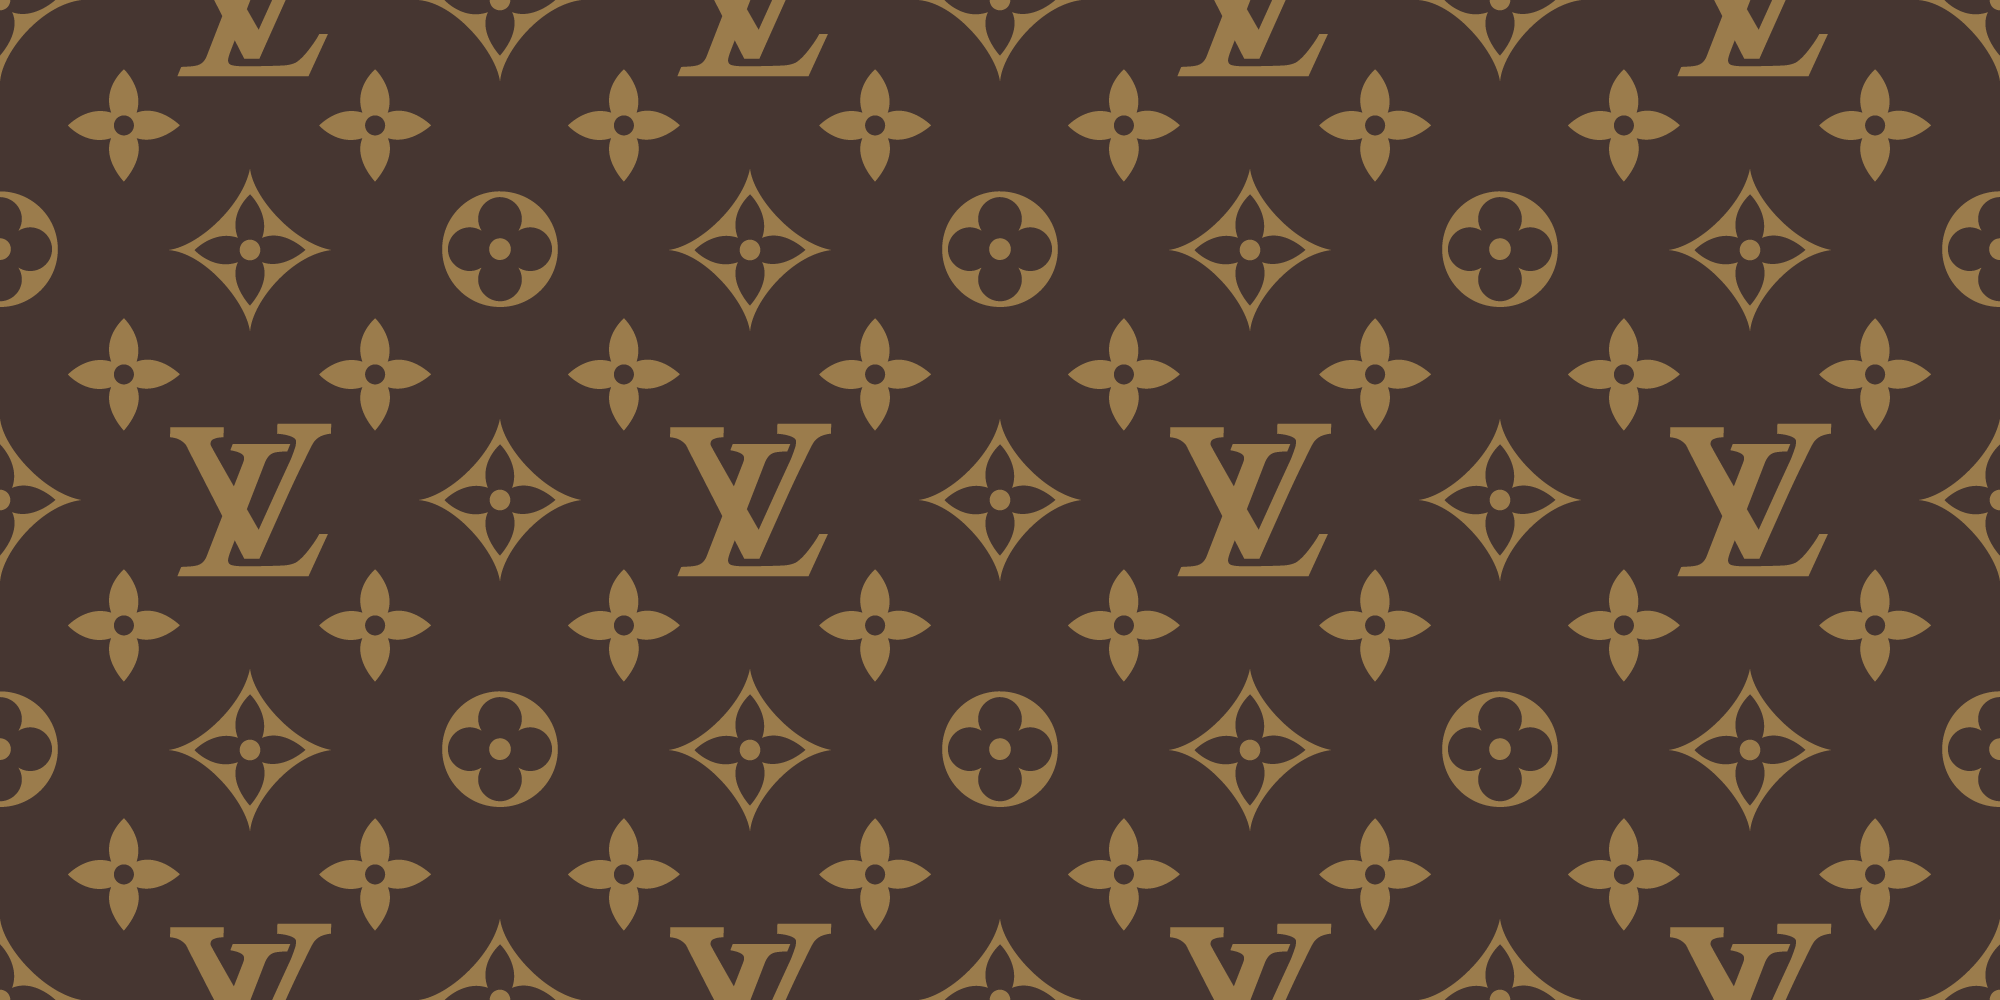 and louis vuitton pattern -#main